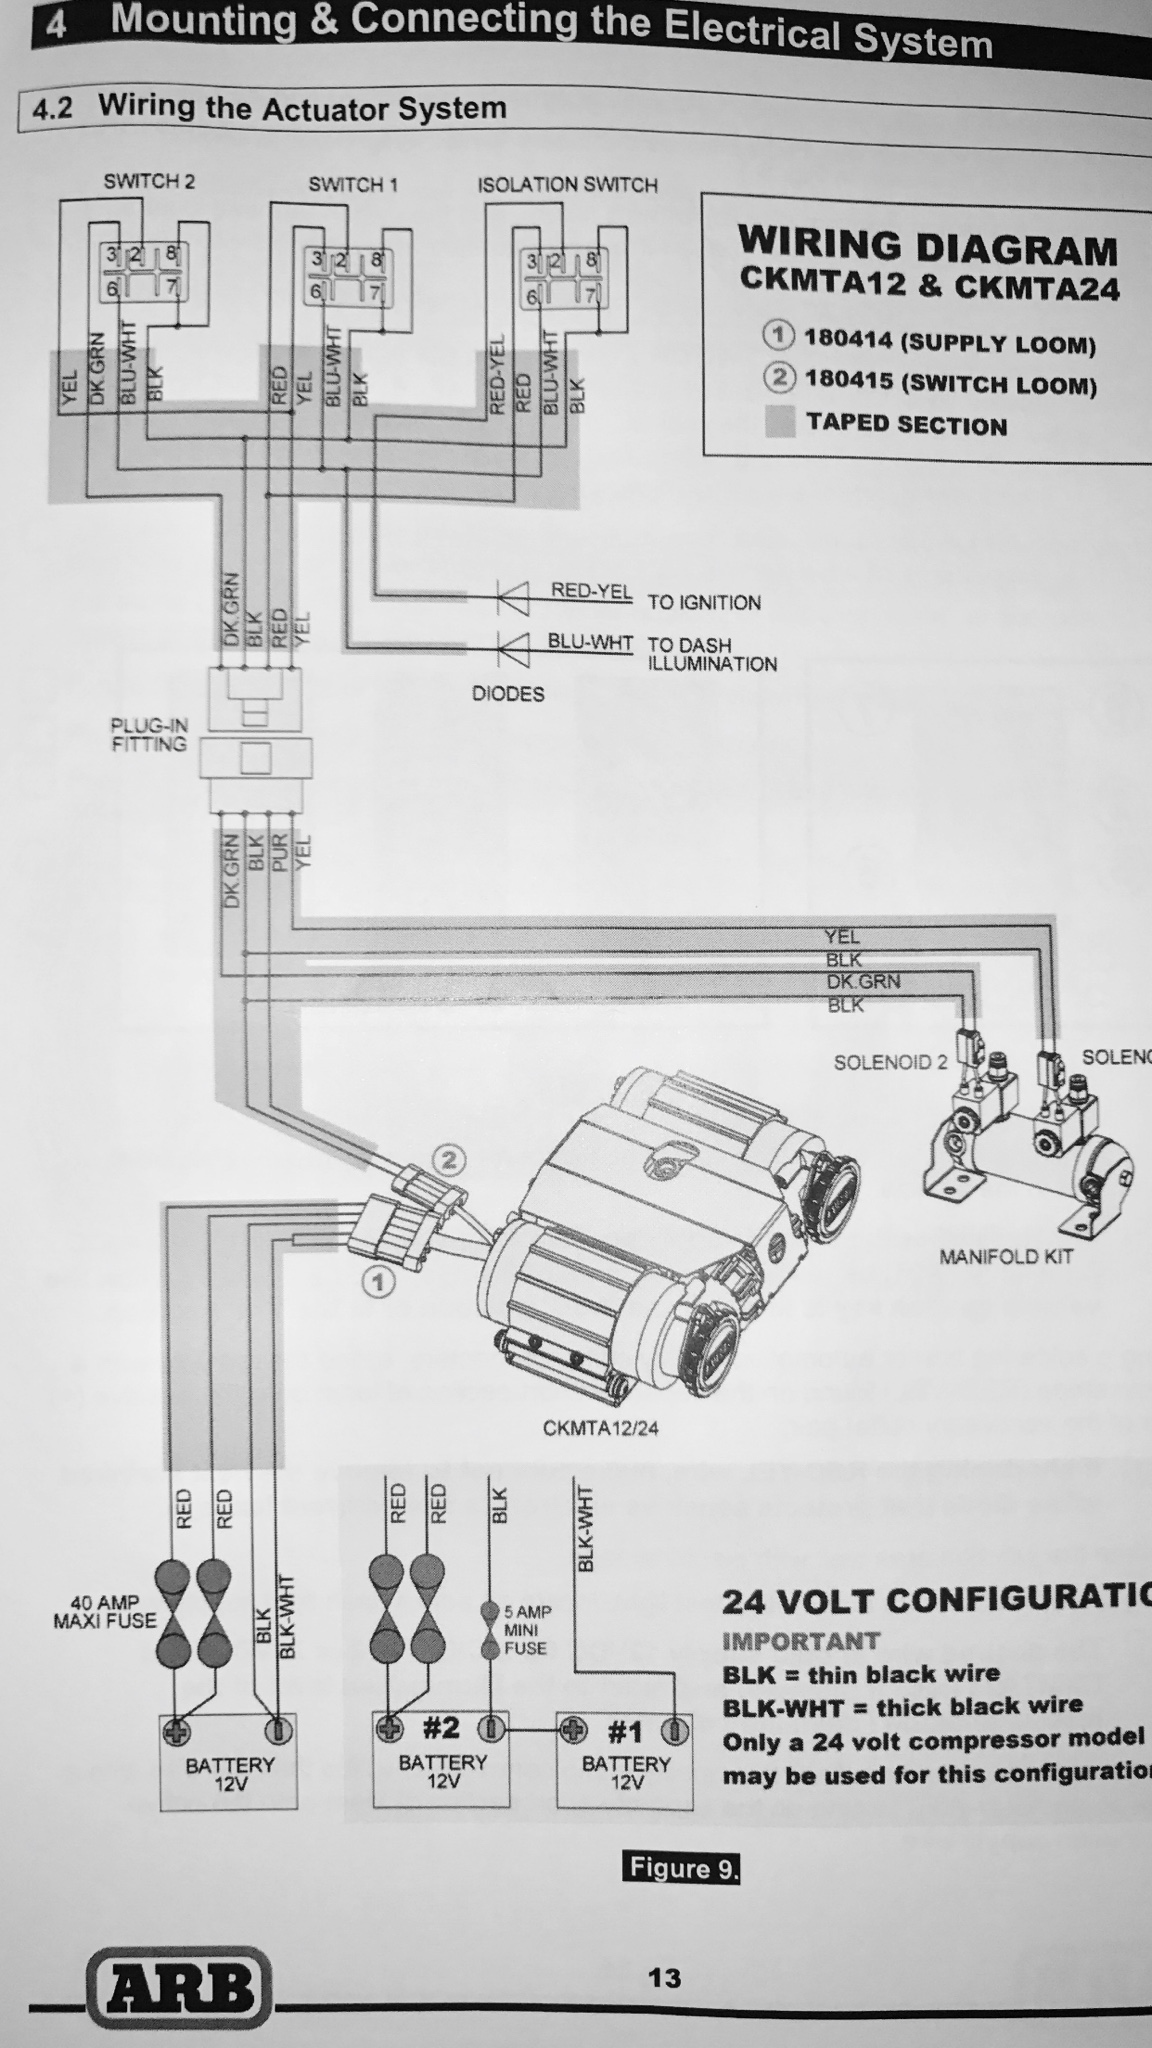 devilbiss wiring diagram wiring diagram rh vw15 vom winnenthal de devilbiss 5000 watt generator wiring diagram